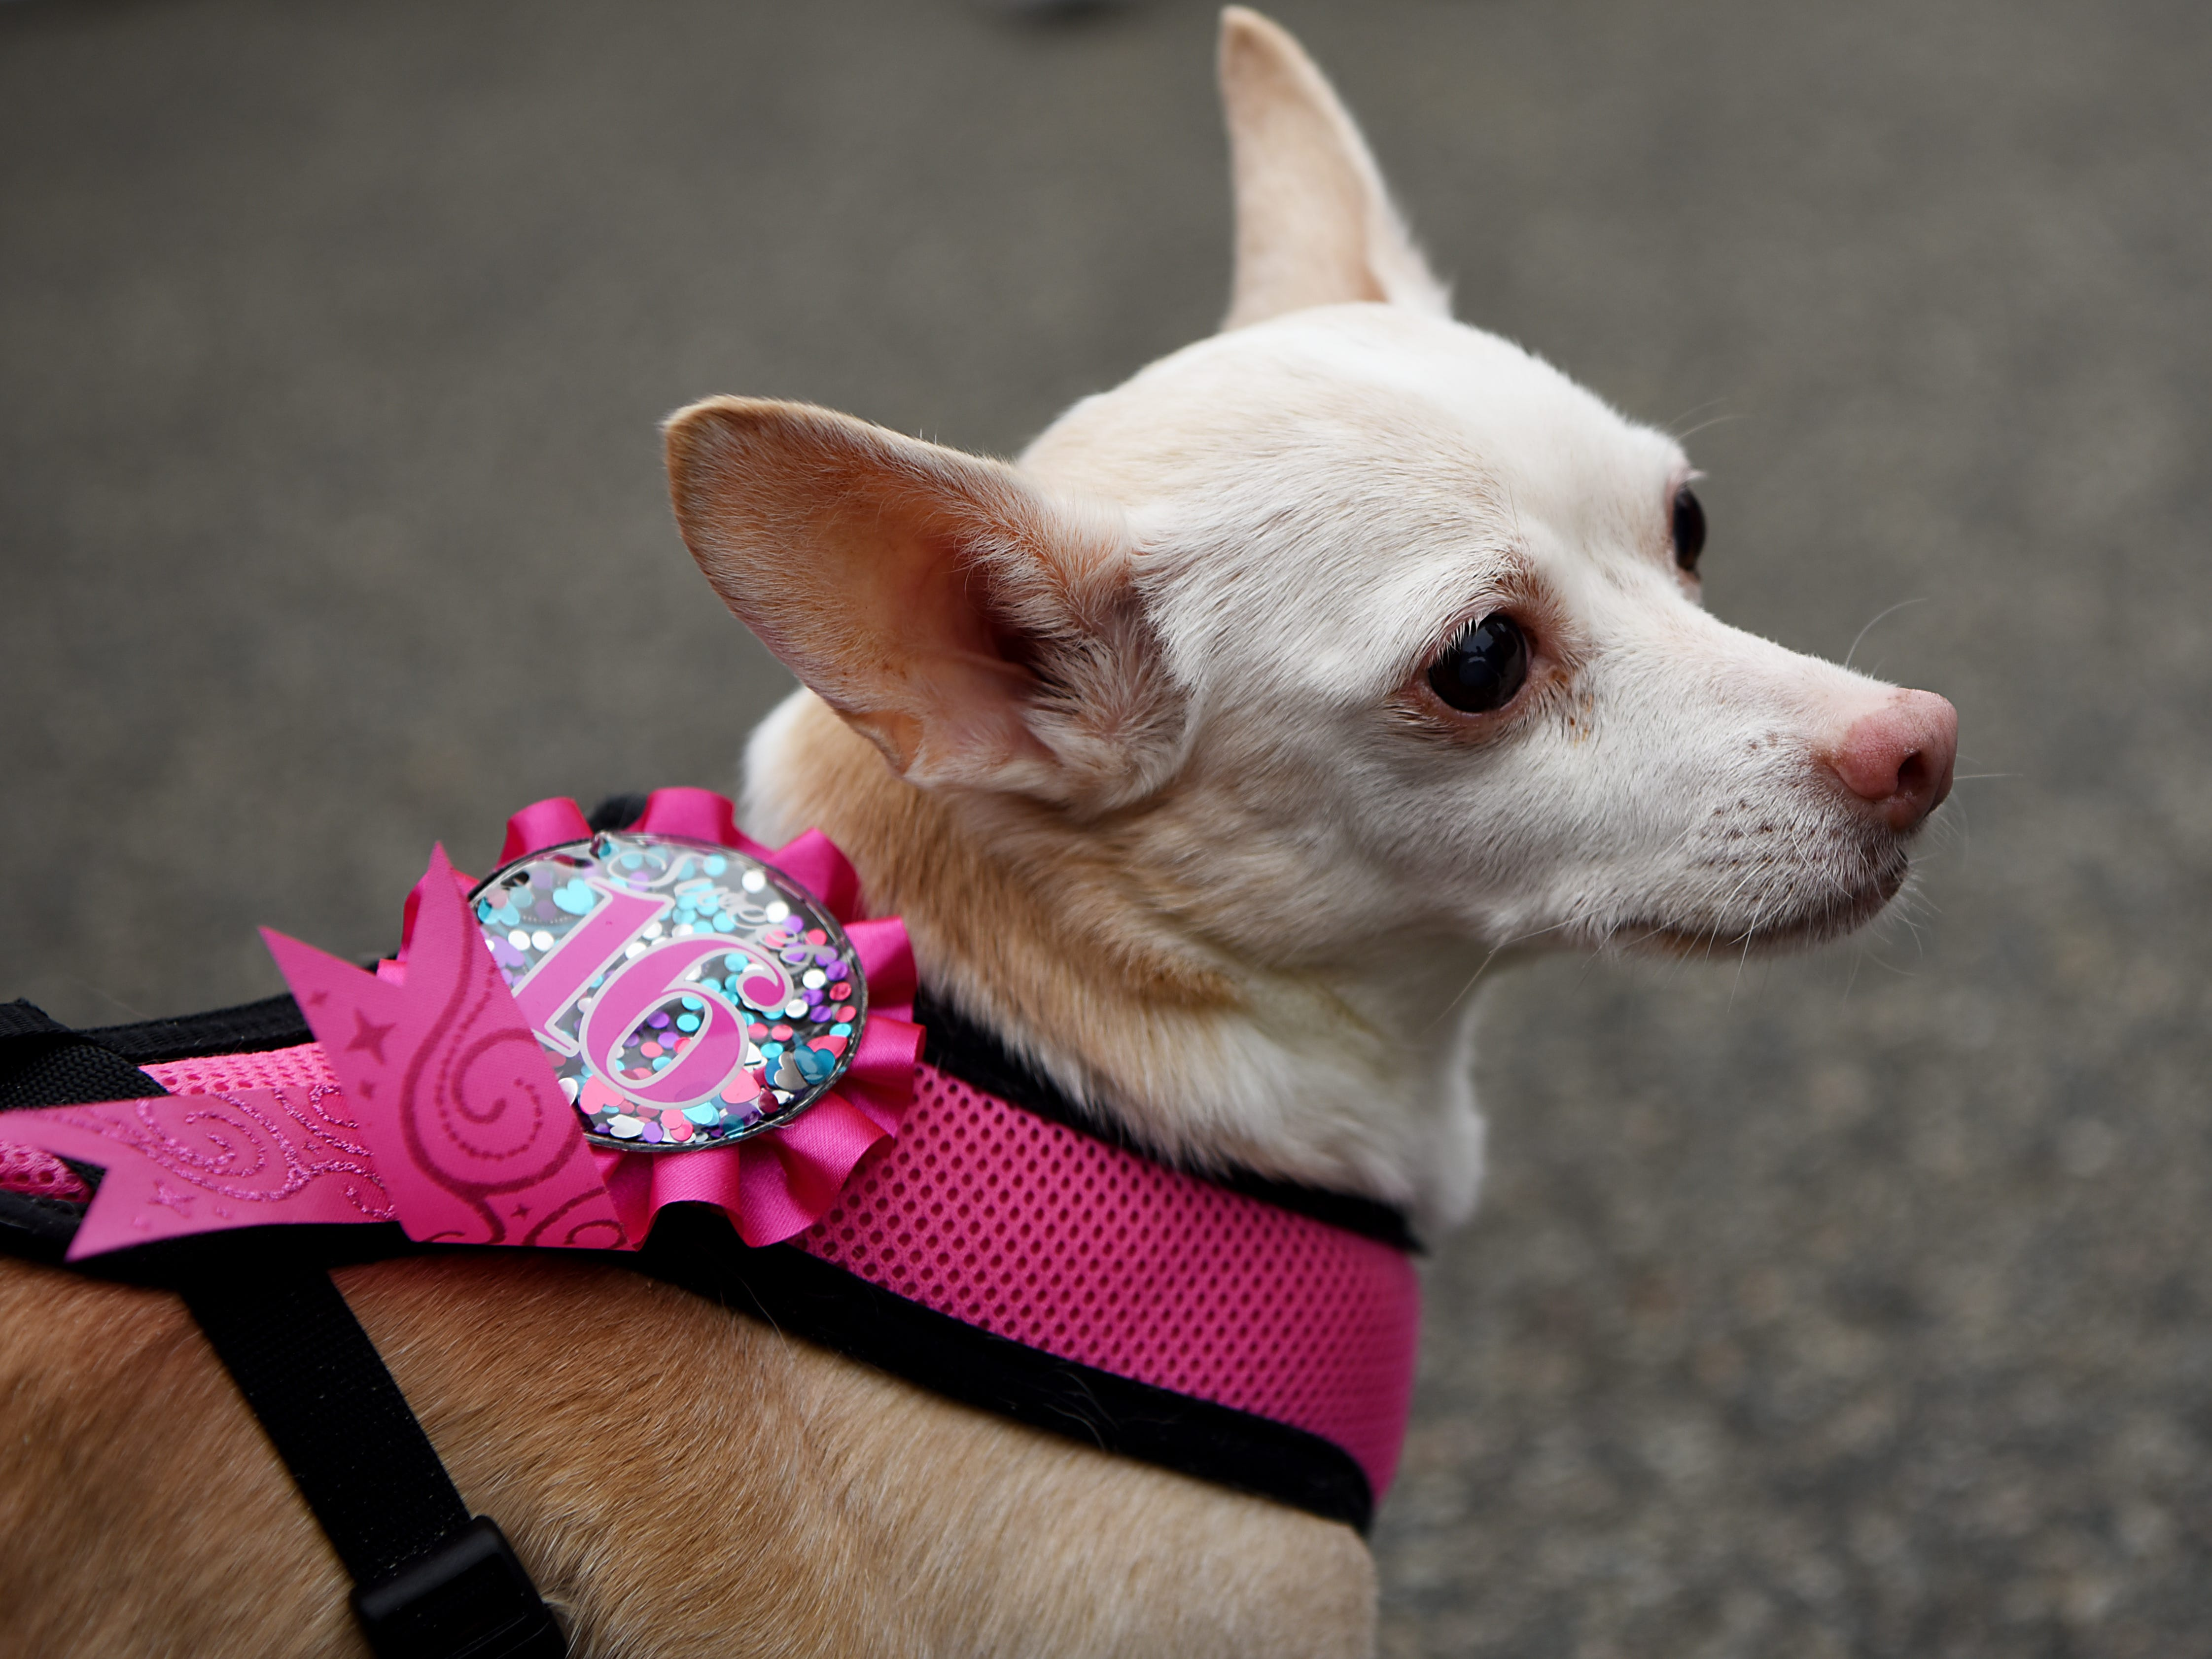 Linda, a 16 year old Chihuahua mix from North Bergeen, proudly flaunts her age. Woofstock 2018, a benefit for Bergen County animal rescue organizations, at City Place in Edgewater on Saturday September 8, 2018.